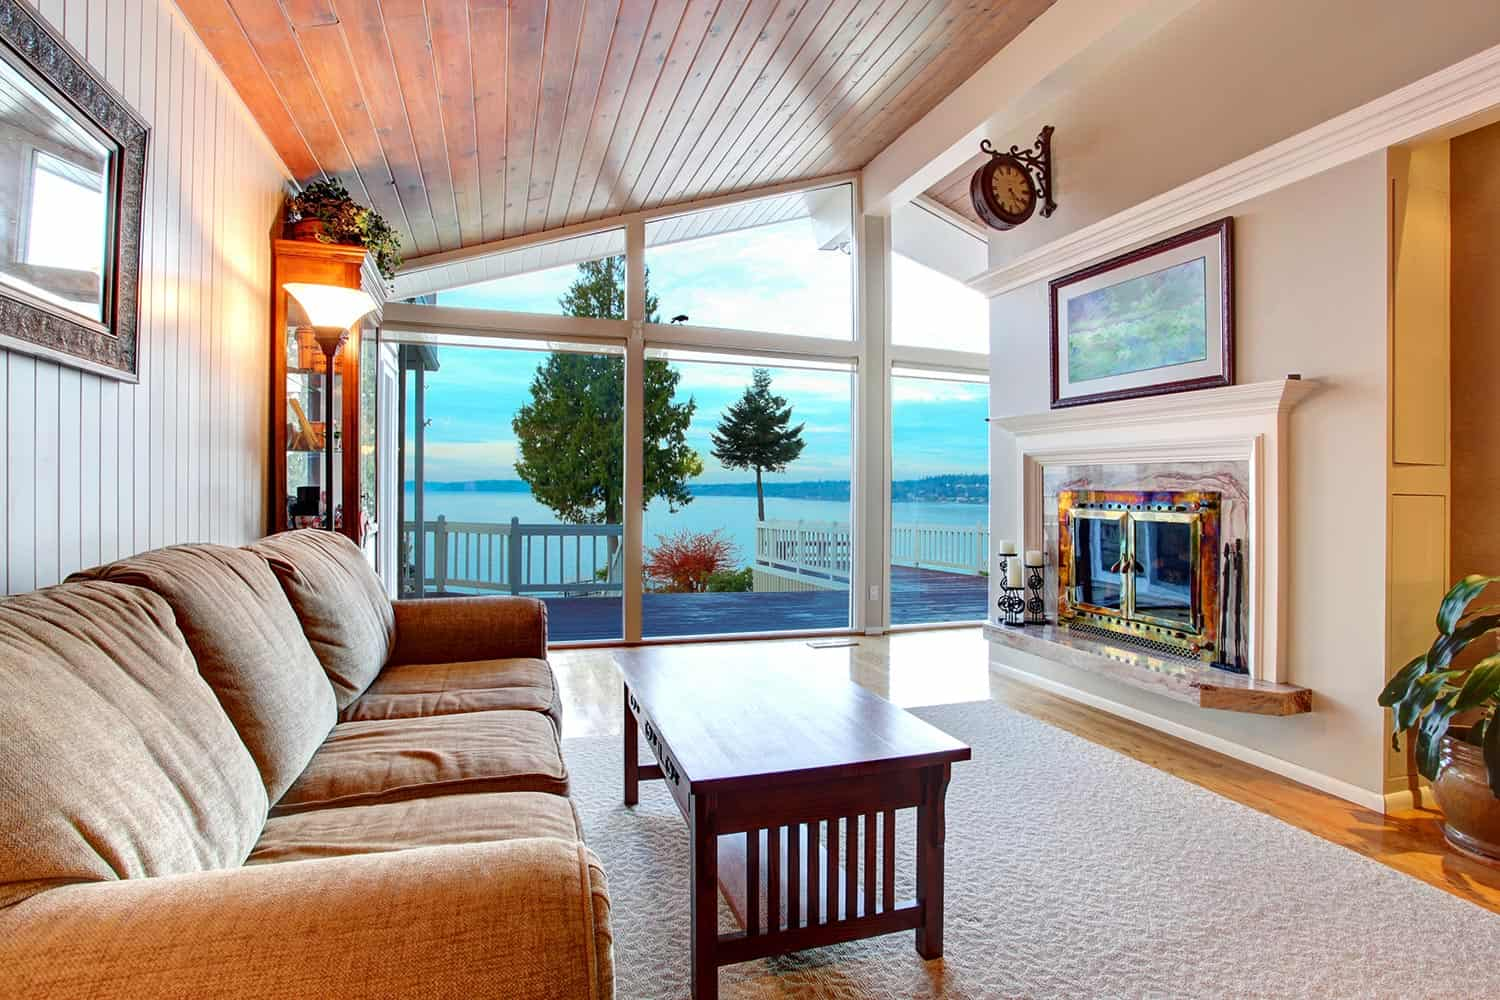 Awesome living room interior with sloped wooden ceiling